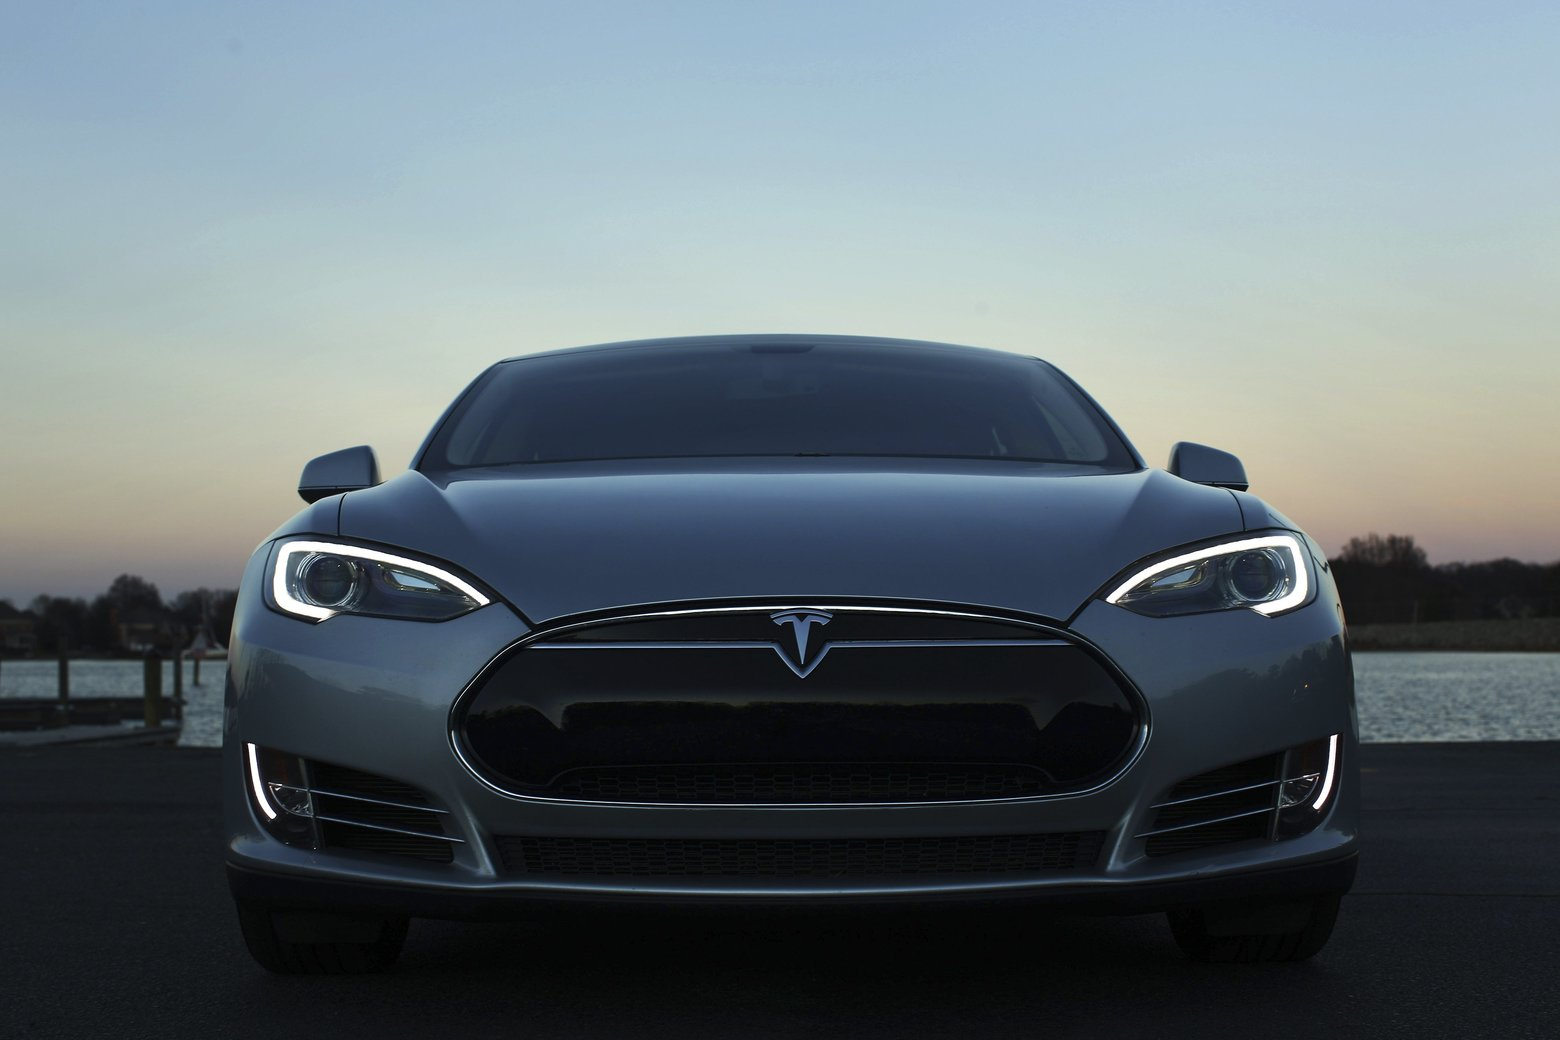 Leilani Muenter's Tesla S, which the professional race car driver, environmental advocate and vegan was able to purchase with cloth seats instead of the standard leather ones, in Huntersville, N.C., Jan. 7, 2016. Tesla, which has introduced synthetic leather as an option on its new Model X sport utility vehicle, is the latest automaker to join the industry's push to project a more environmentally responsible image. (Travis Dove for The New York Times)